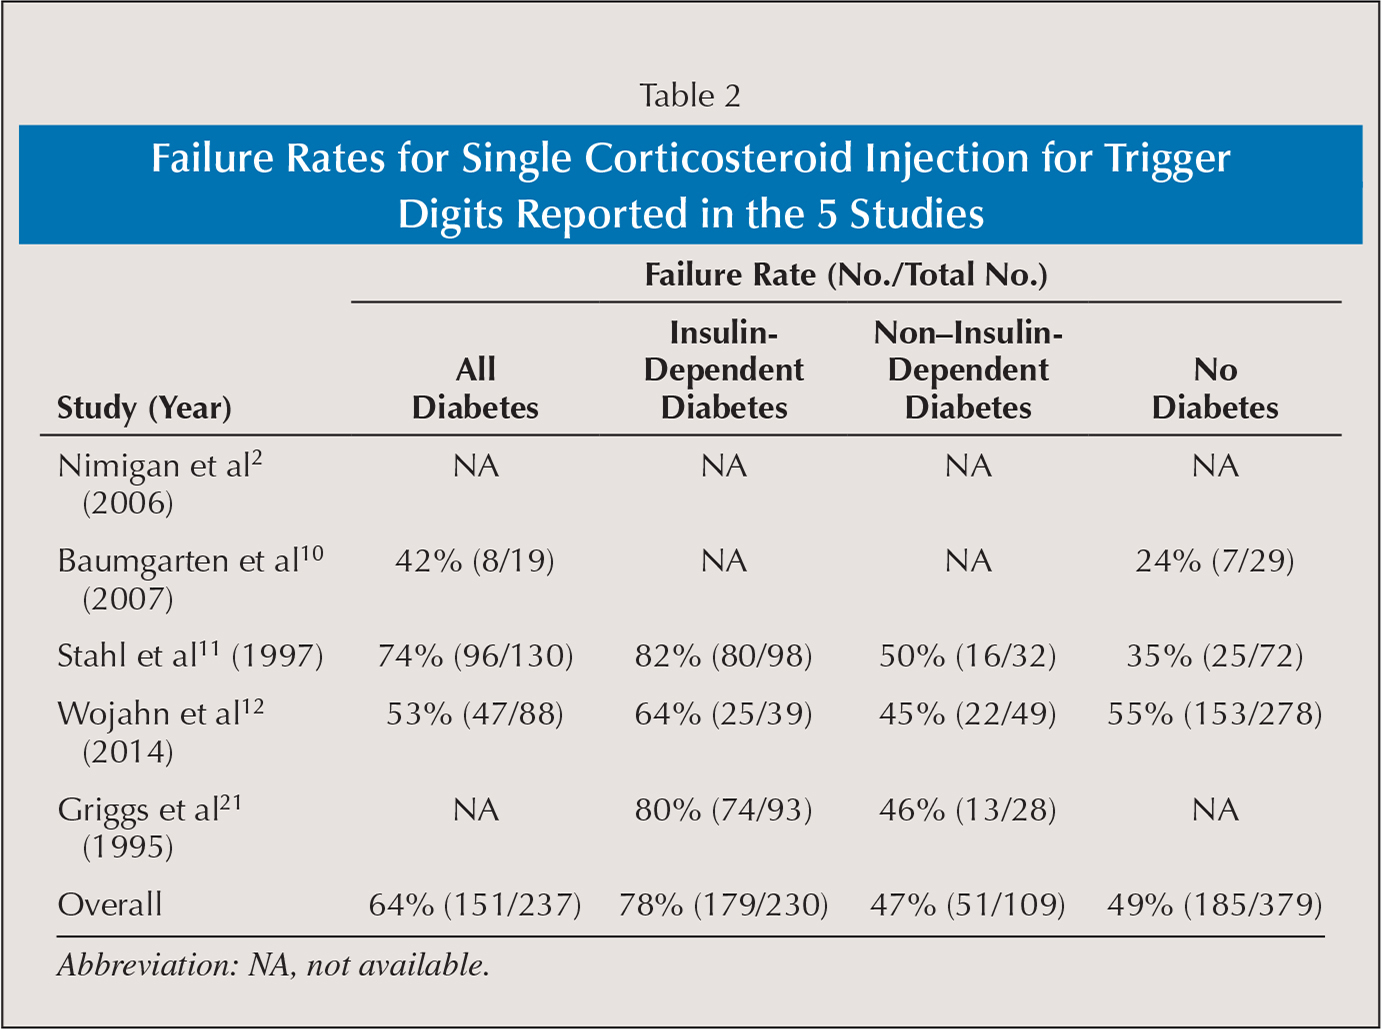 Failure Rates for Single Corticosteroid Injection for Trigger Digits Reported in the 5 Studies